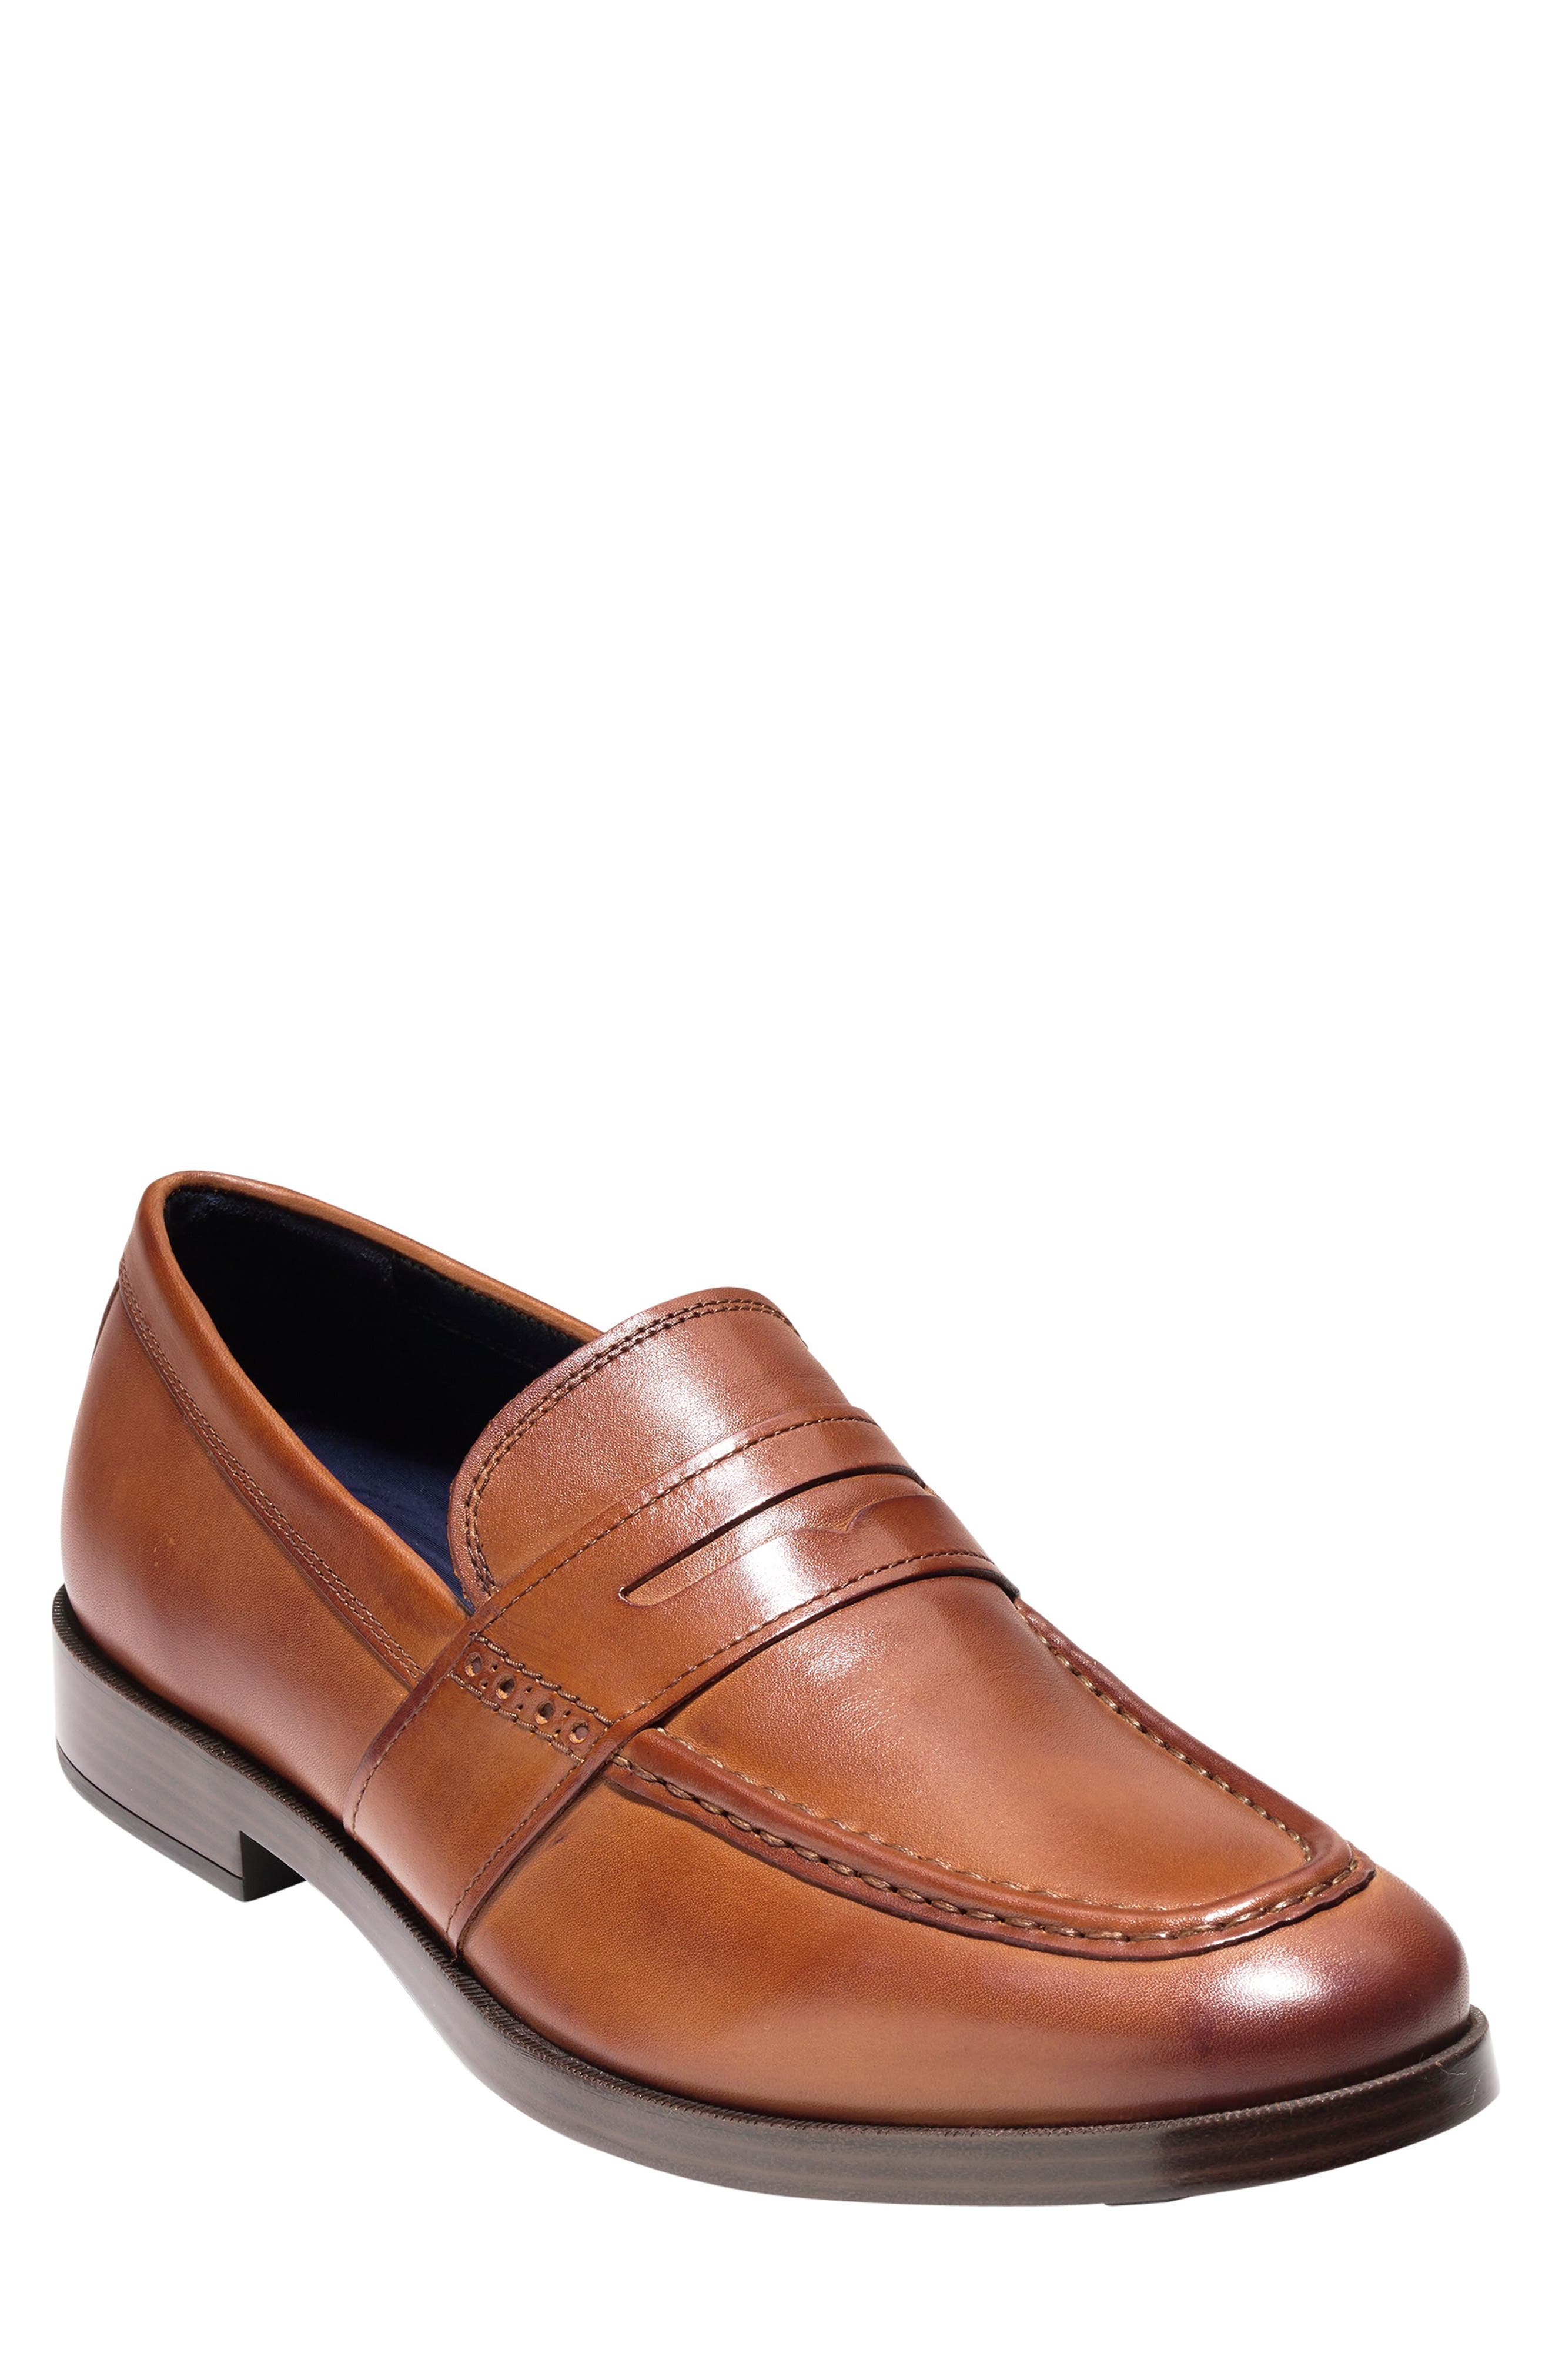 COLE HAAN Jefferson Grand Penny Loafer, Main, color, BRITISH TAN LEATHER